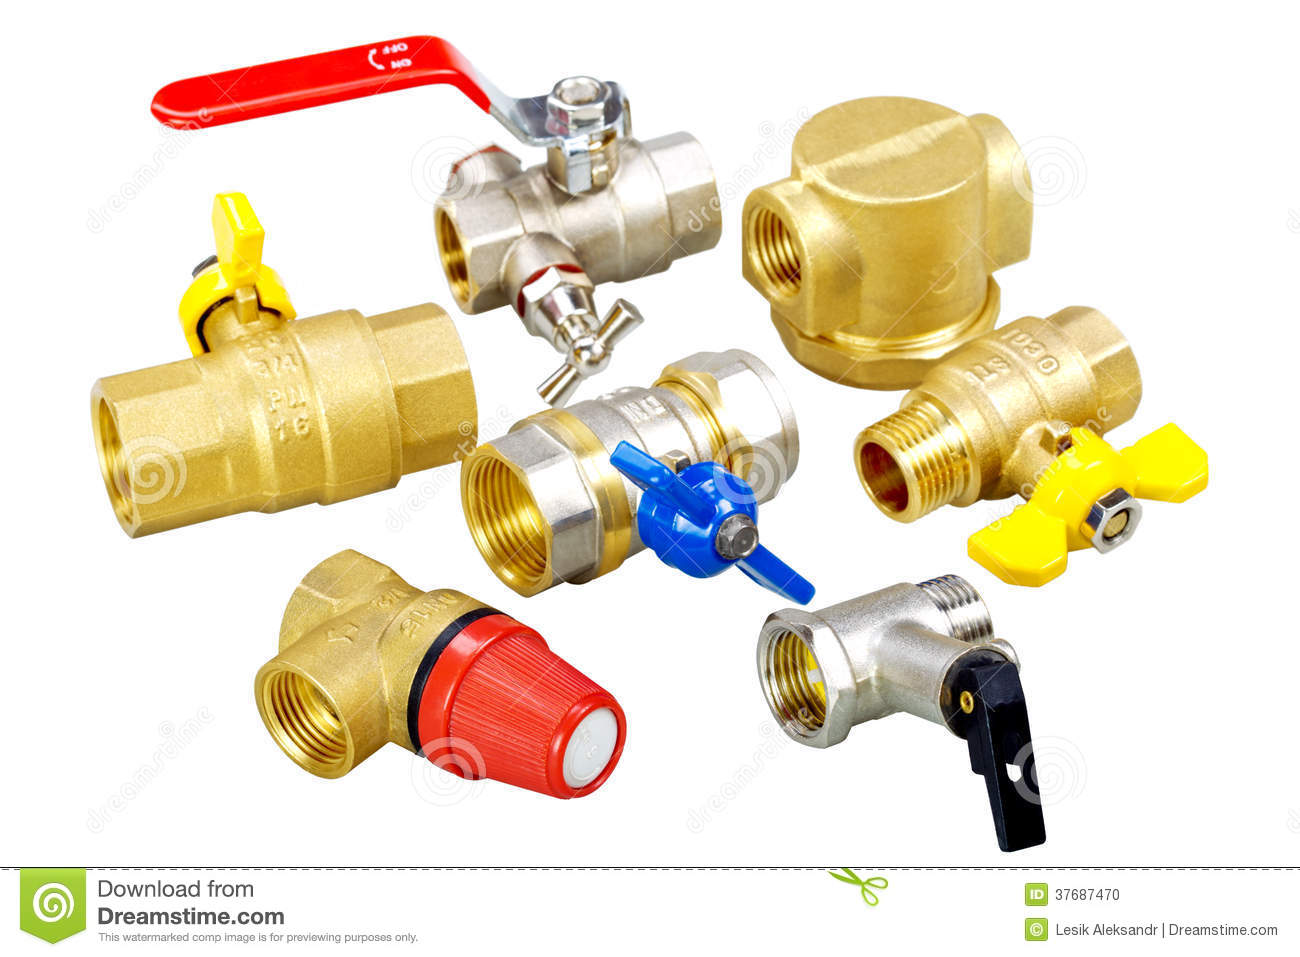 Plumbing fixtures valves fittings stock photo image of